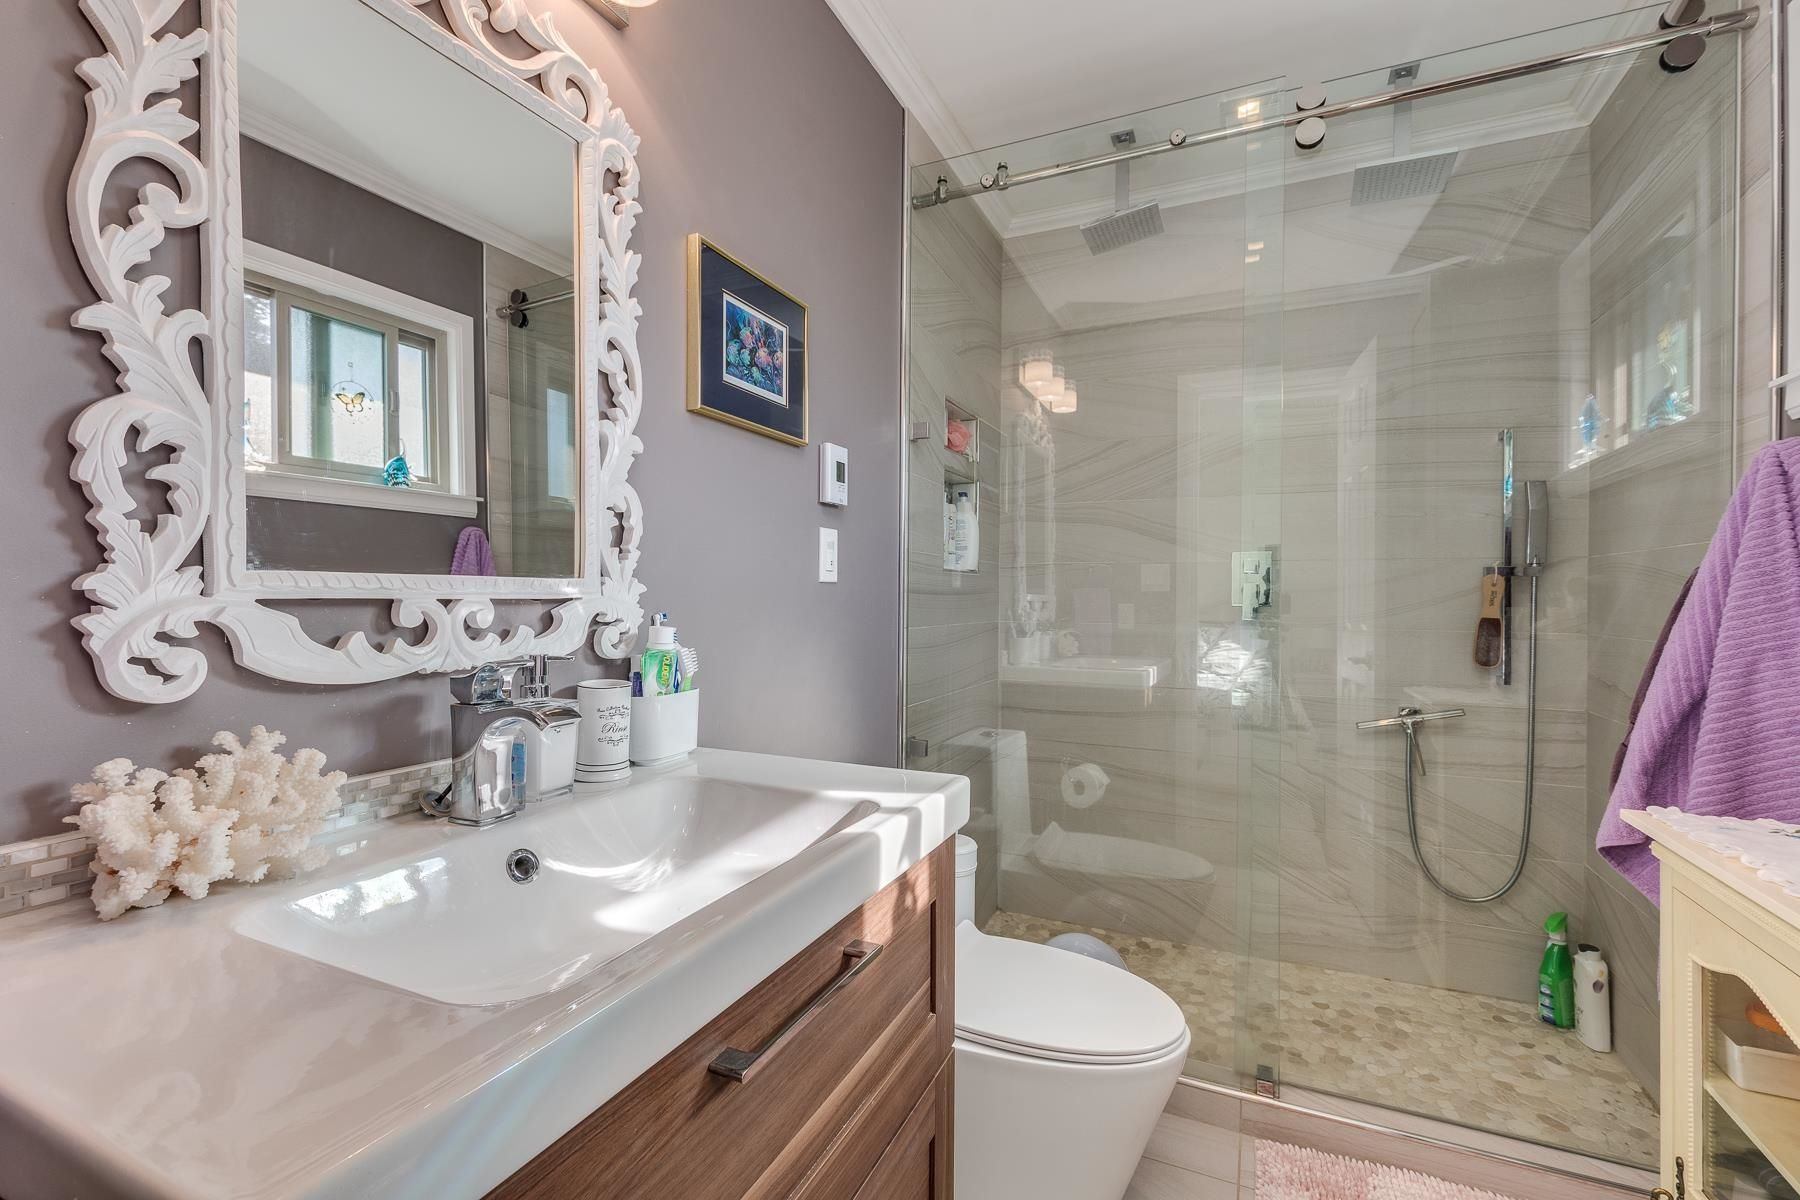 Photo 19: Photos: 3671 SOMERSET Street in Port Coquitlam: Lincoln Park PQ House for sale : MLS®# R2610216